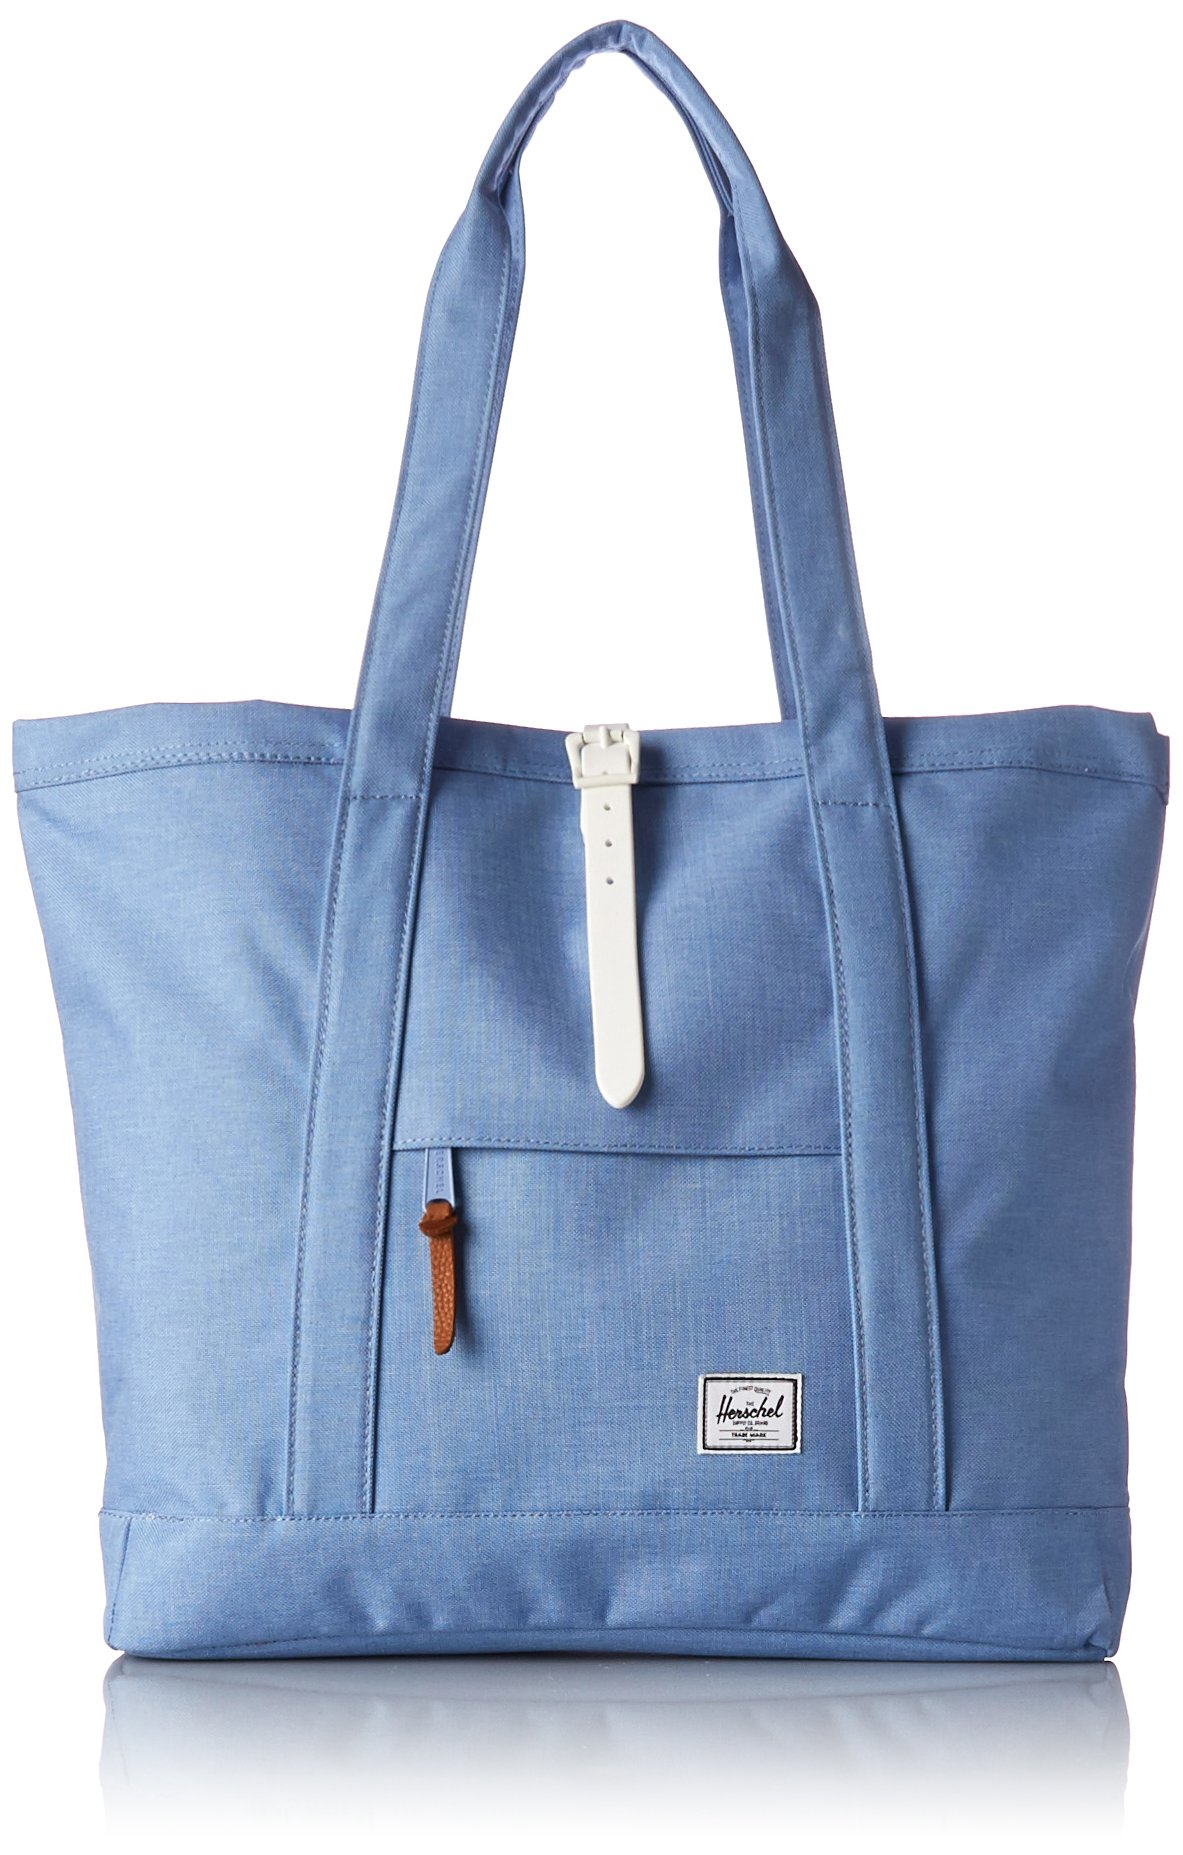 Herschel Supply Co. Market X-Large Travel Tote, Chambray, One Size by Herschel Supply Co. (Image #1)